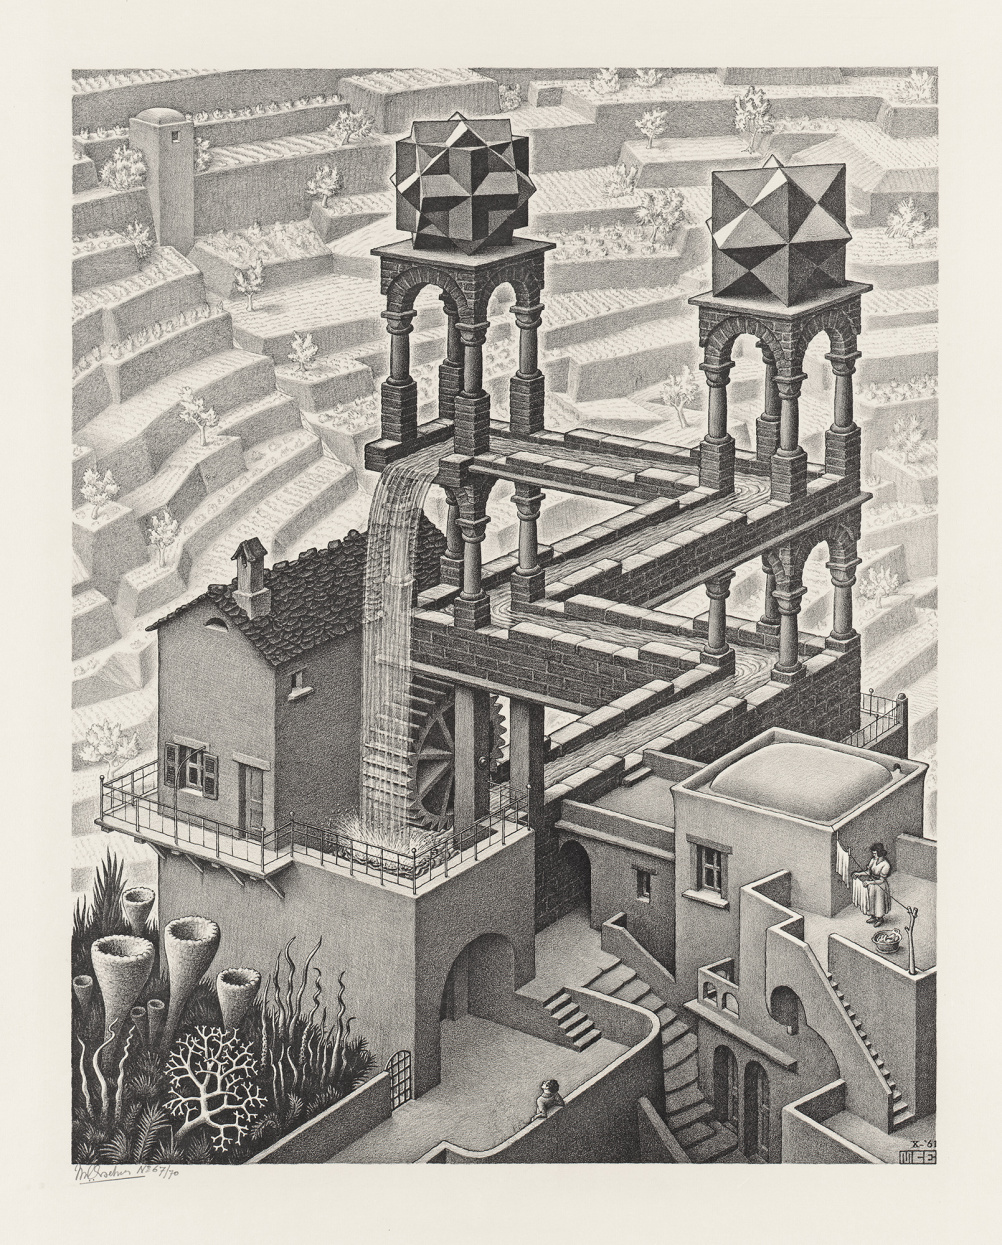 M C Escher's Waterfall